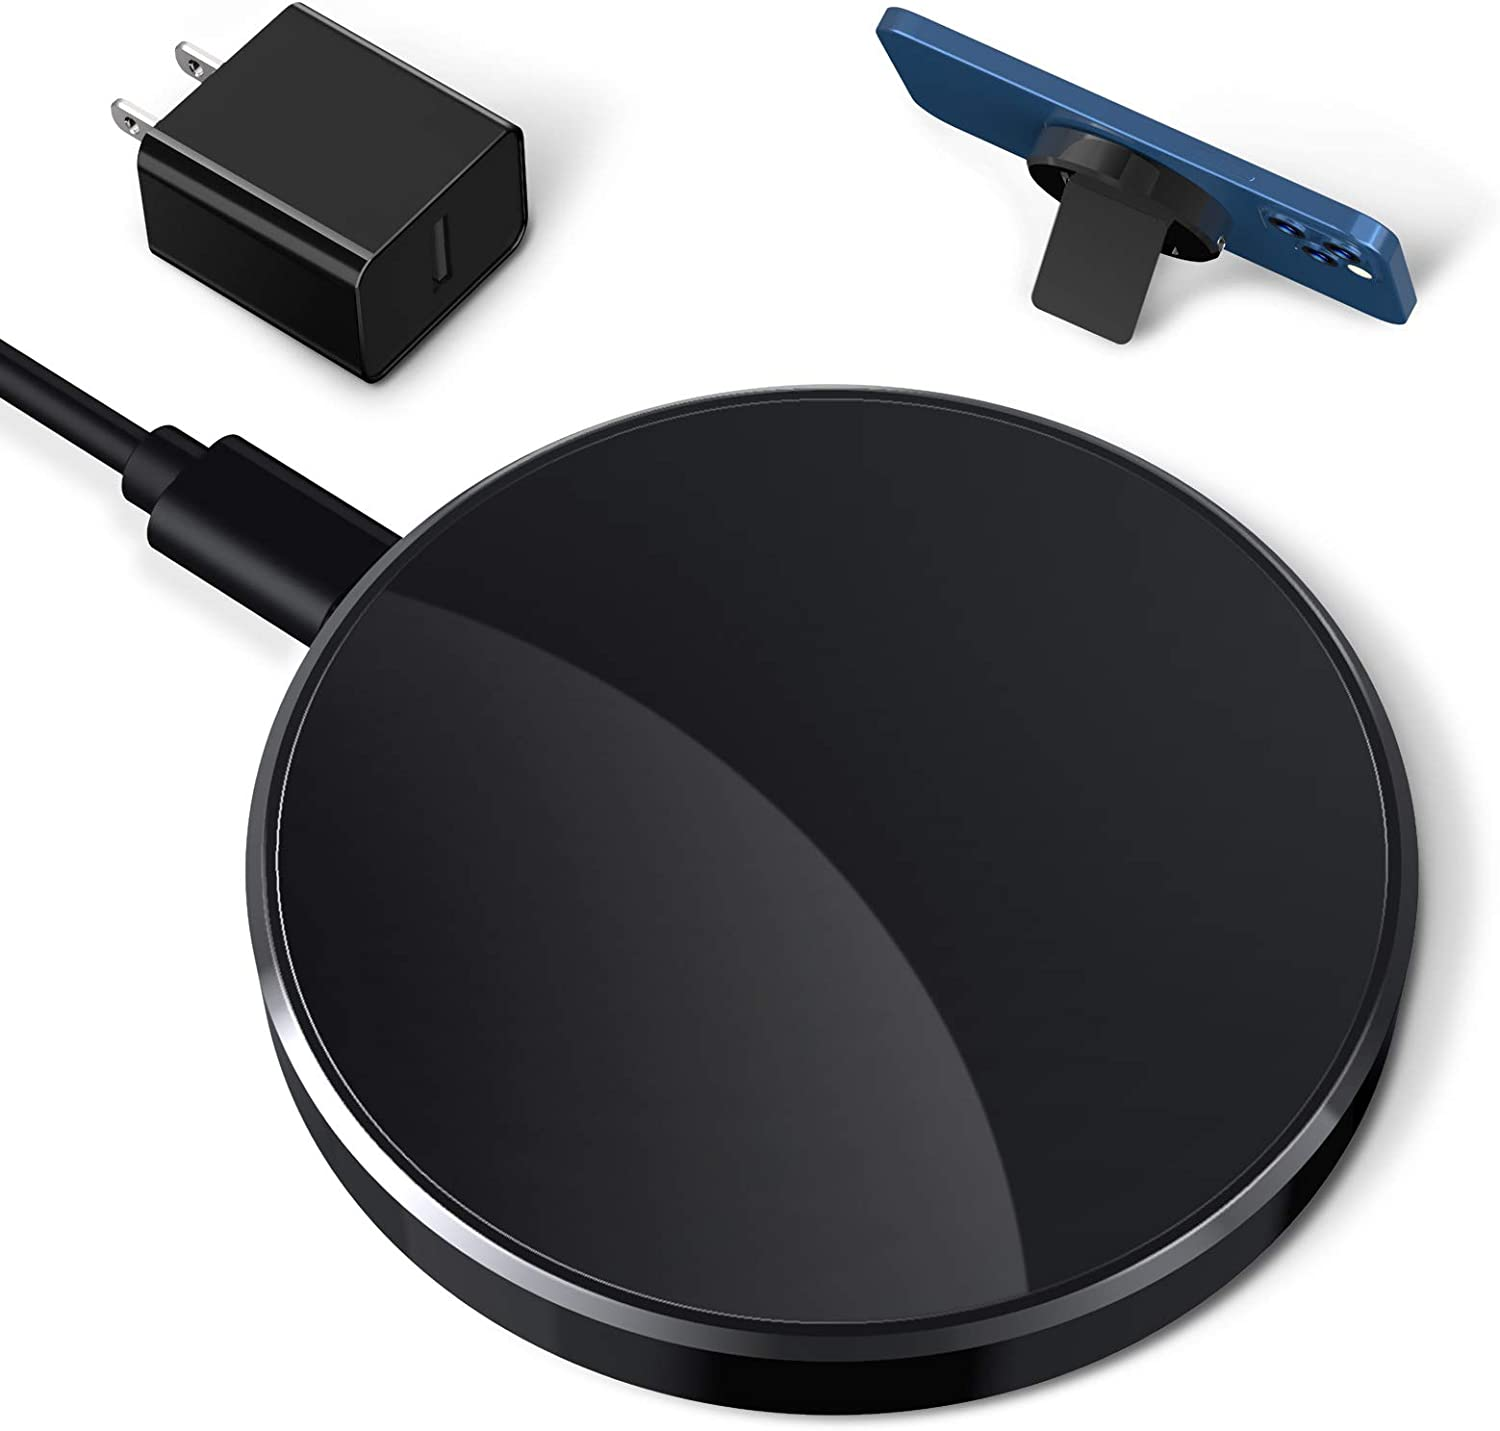 QI-EU Magnetic Wireless Charger Compatible with iPhone 12/12 Mini/12 Pro/ 12 Pro max and Apple AirPods 2 /pro,Fast Charging Pad Station with 18W Adapter